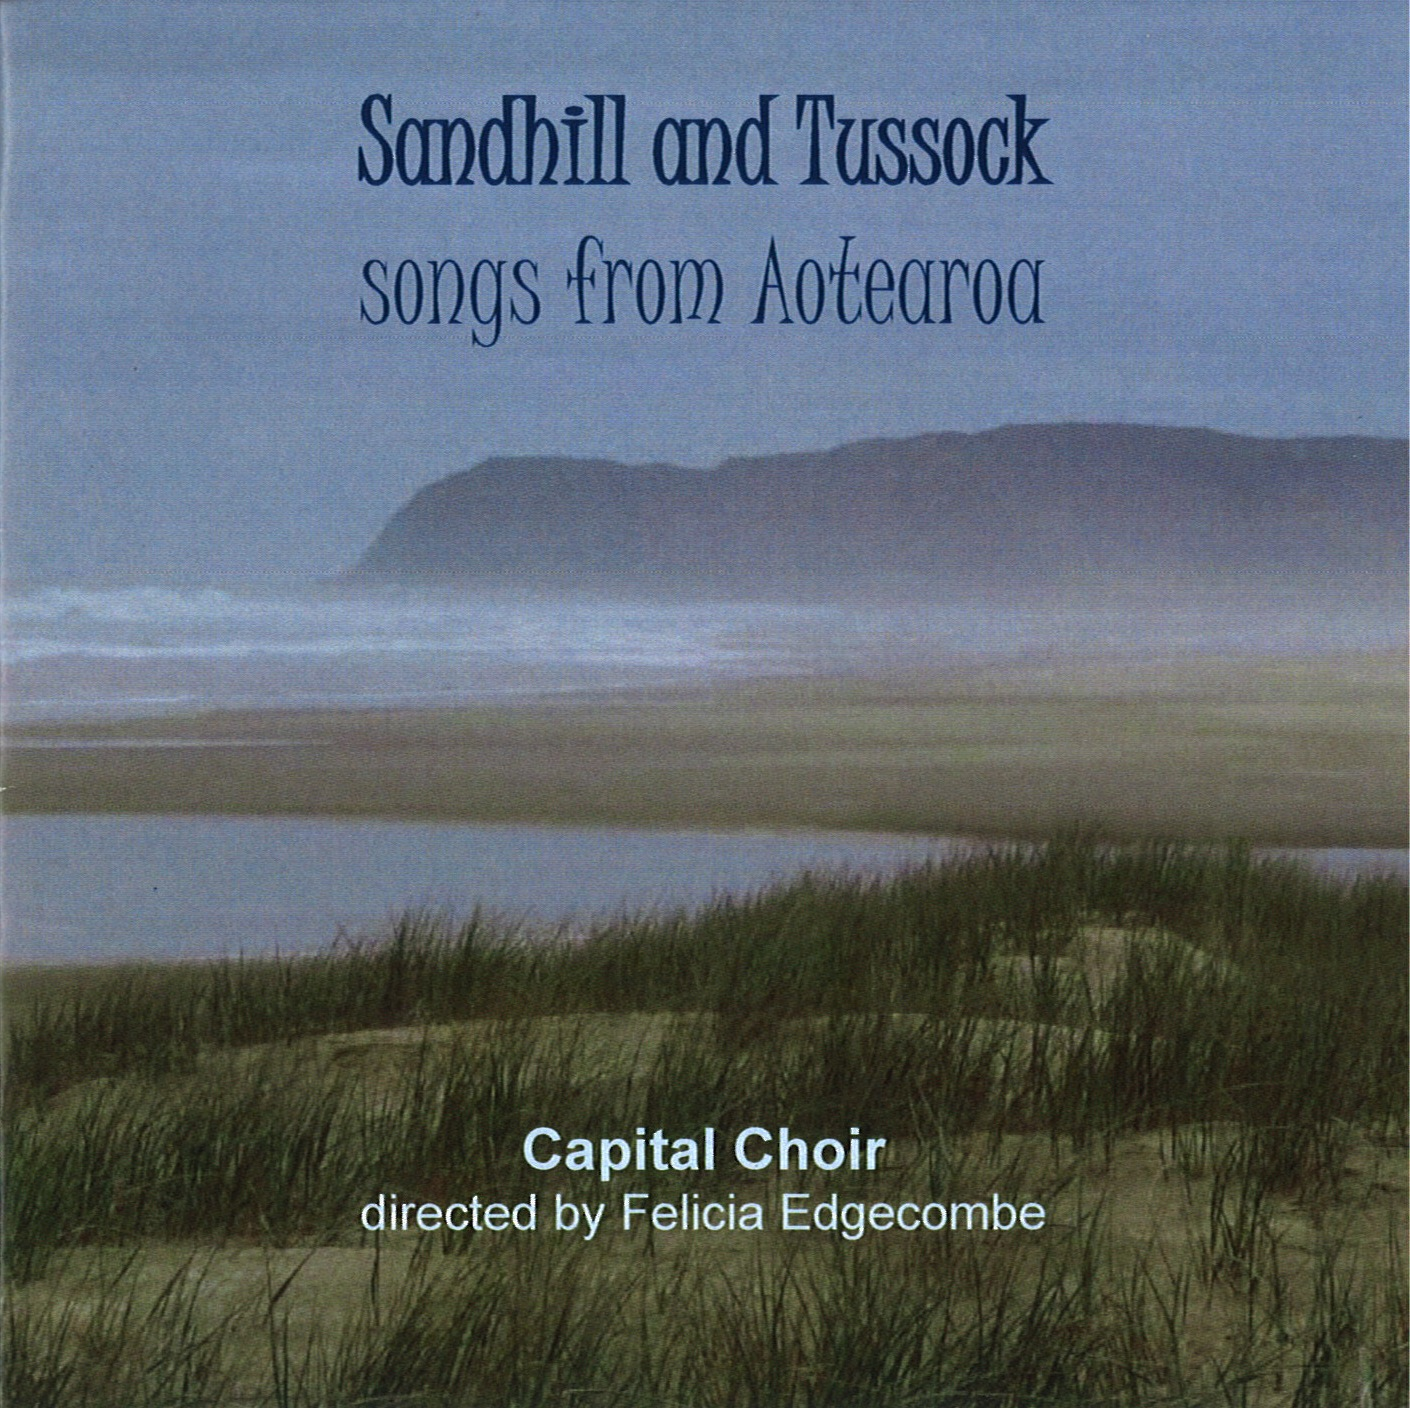 The Capital Choir: Sandhill and Tussock - songs from Aotearoa